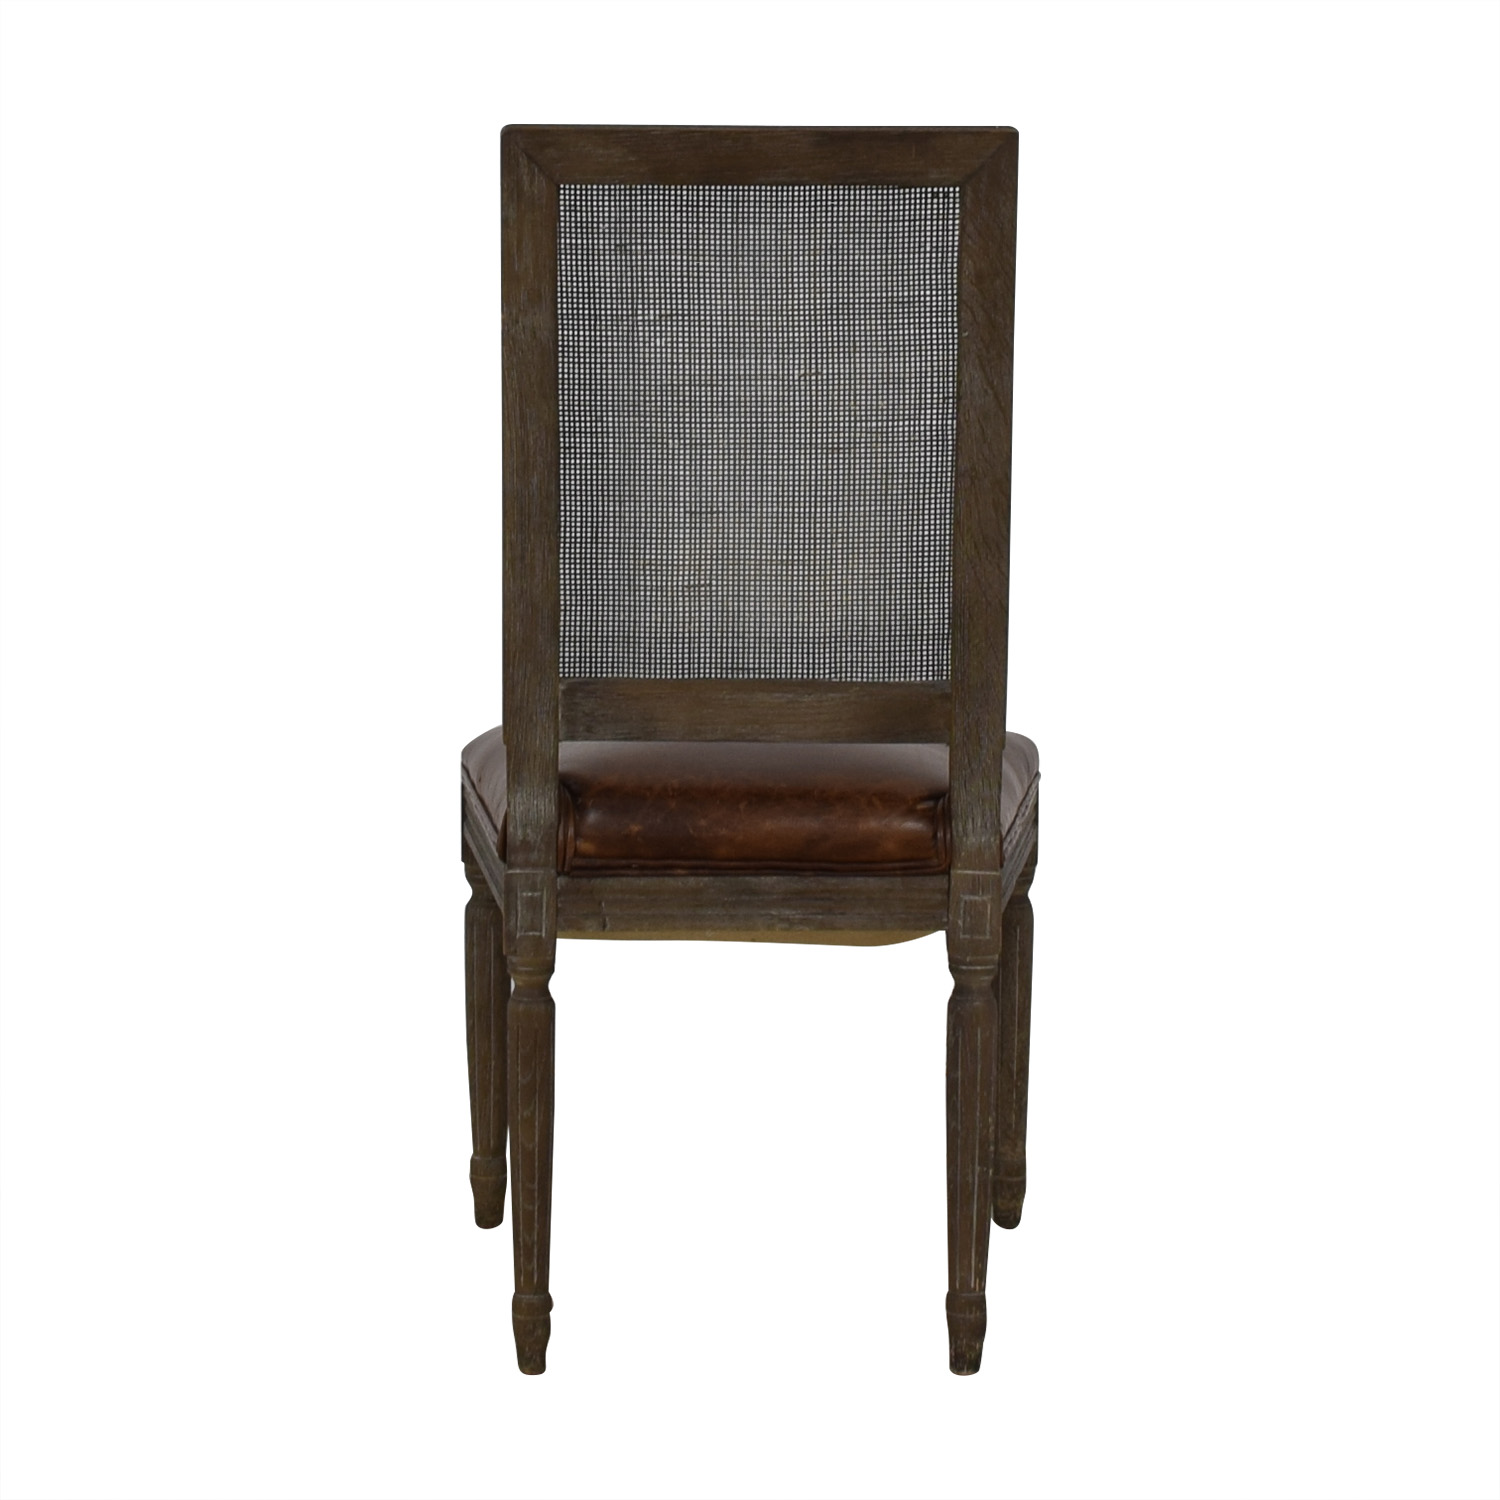 Restoration Hardware Vintage French Square Cane Back Leather Side Chair / Dining Chairs